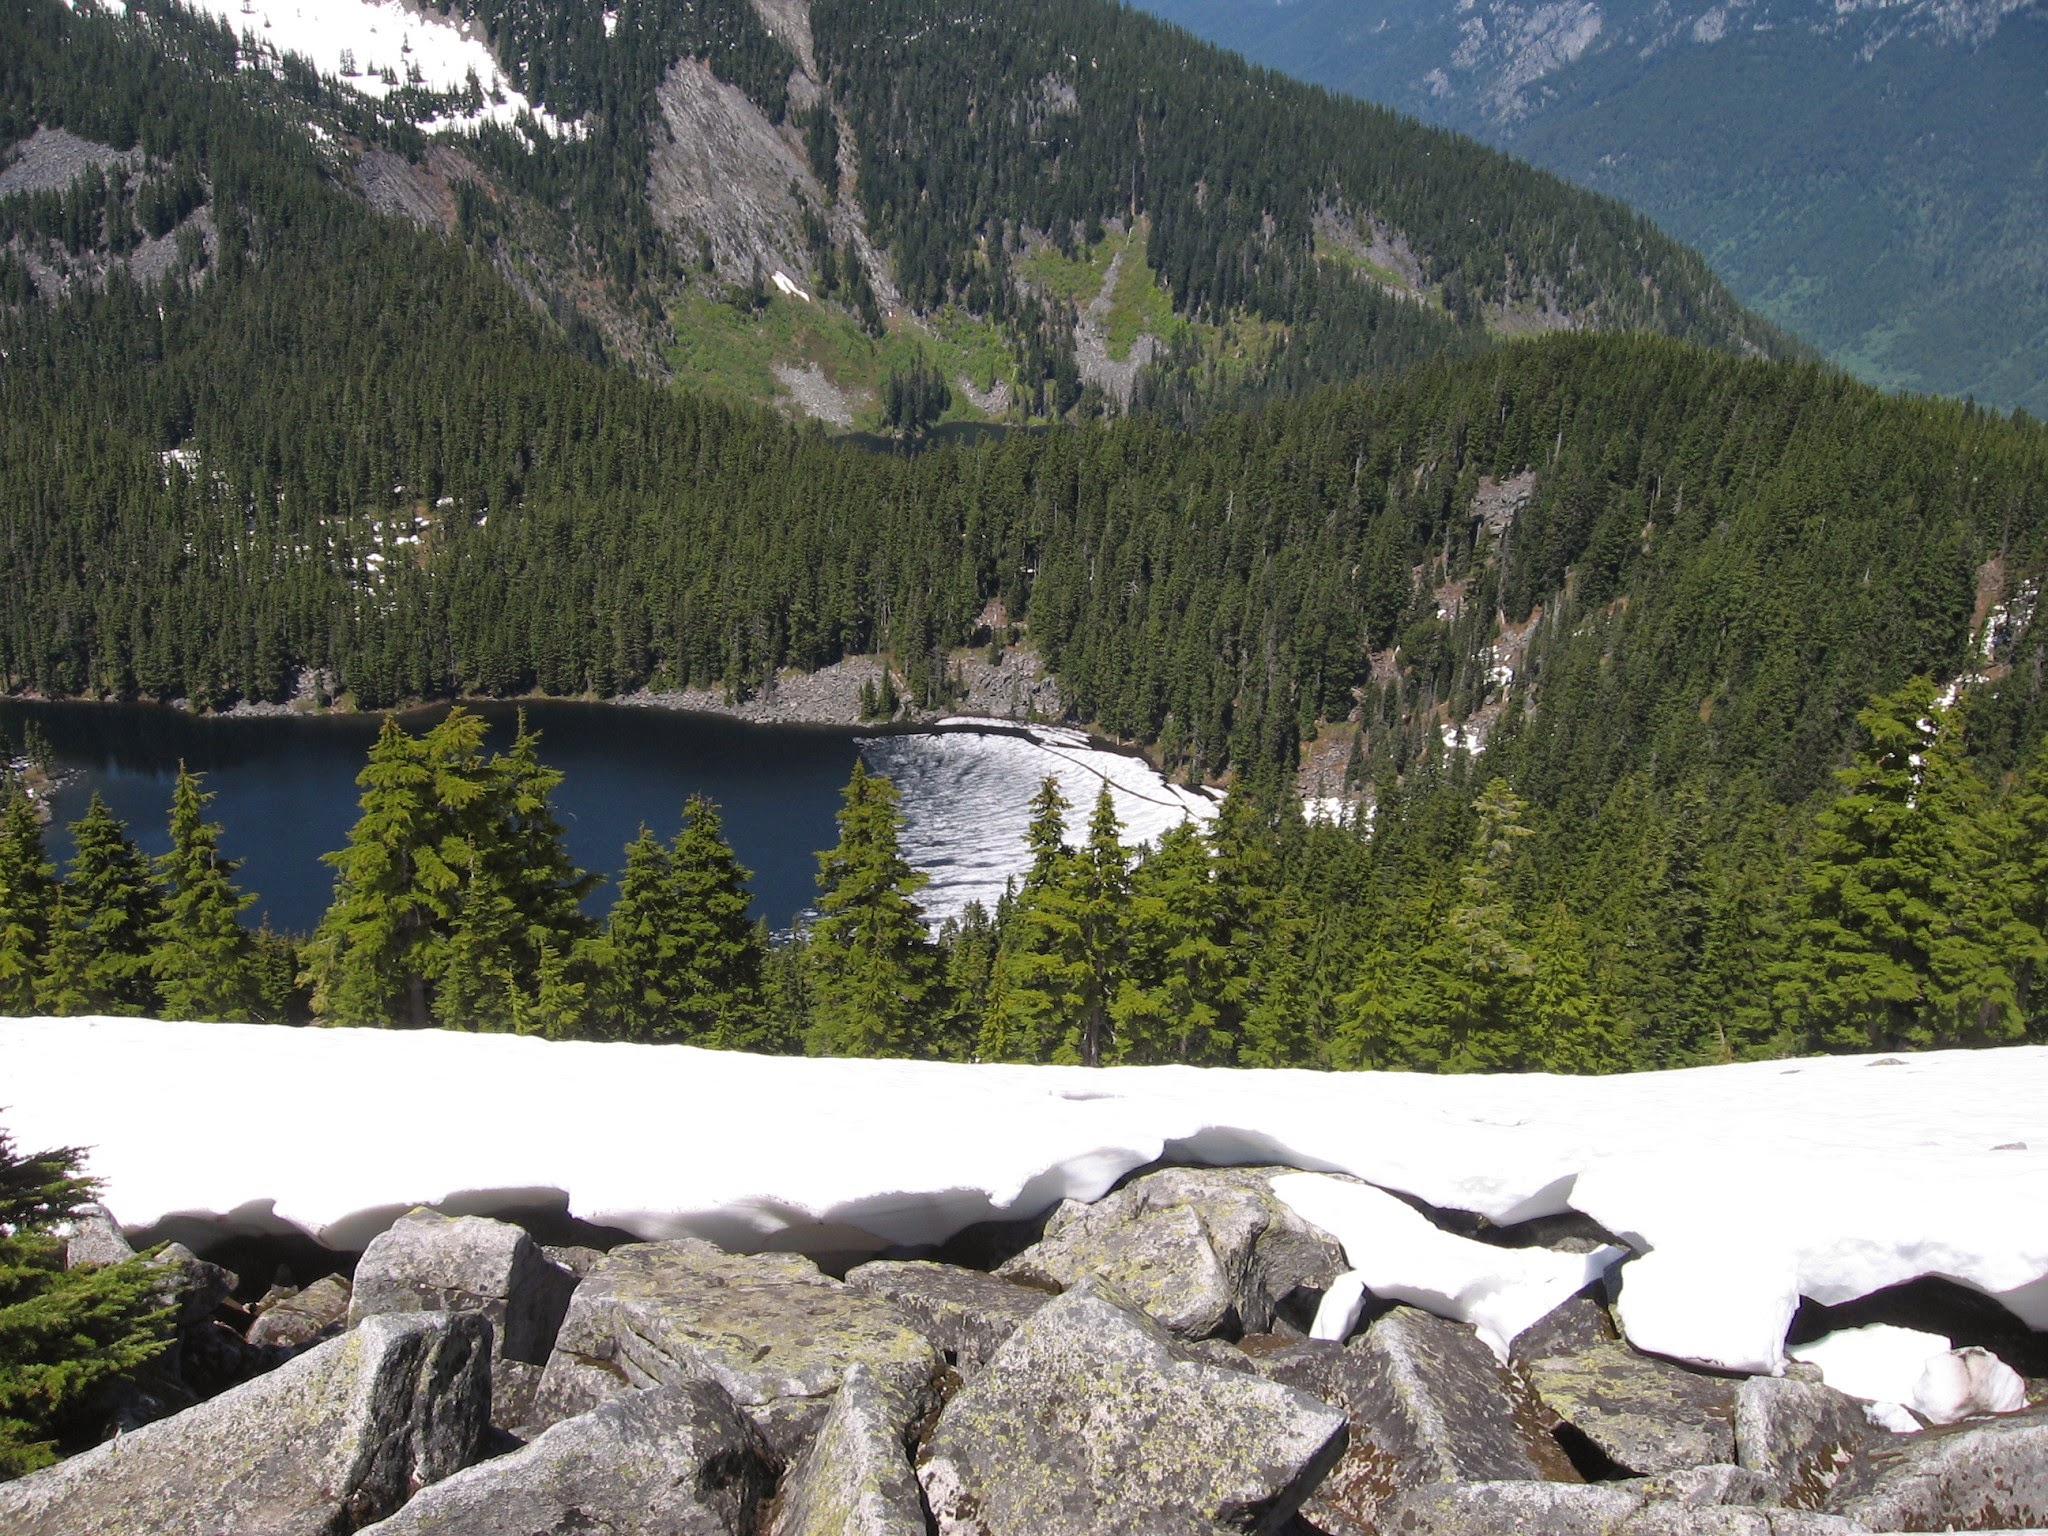 Snow covered rocks in the foreground, with trees and an alpine lake and other mountains in the background